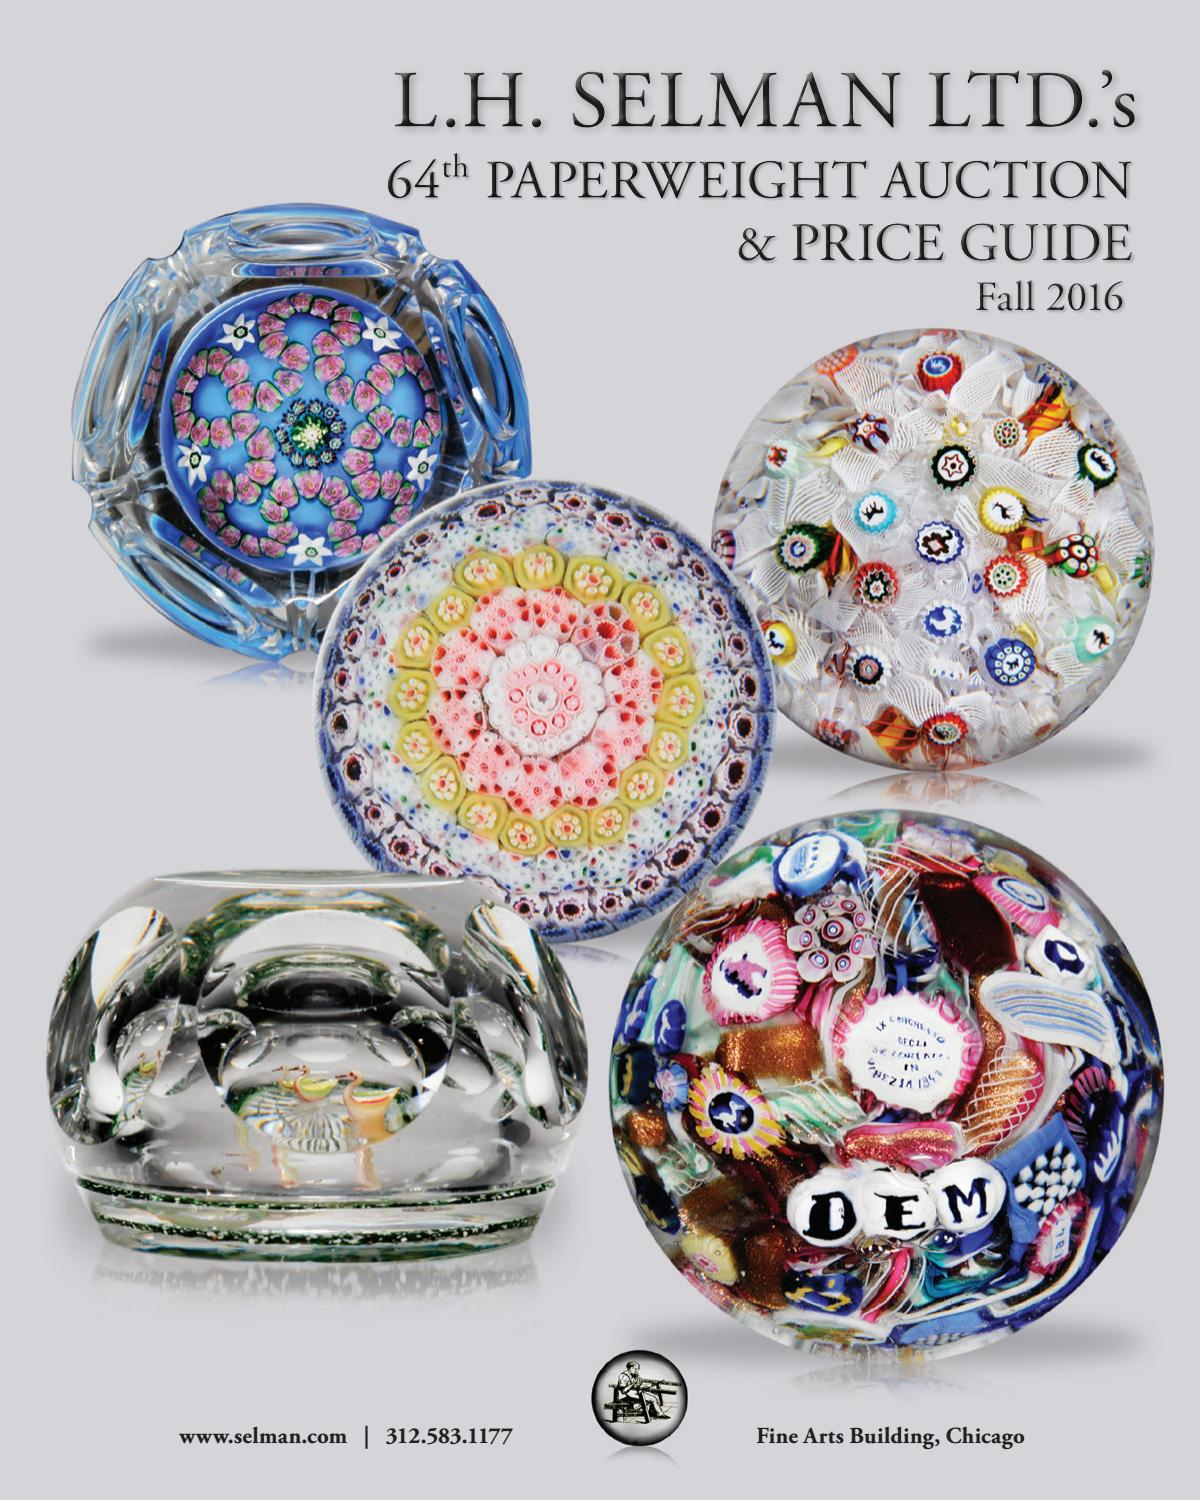 Lh Selman Ltds 64th Paperweight Auction Price Guide Fall 2016